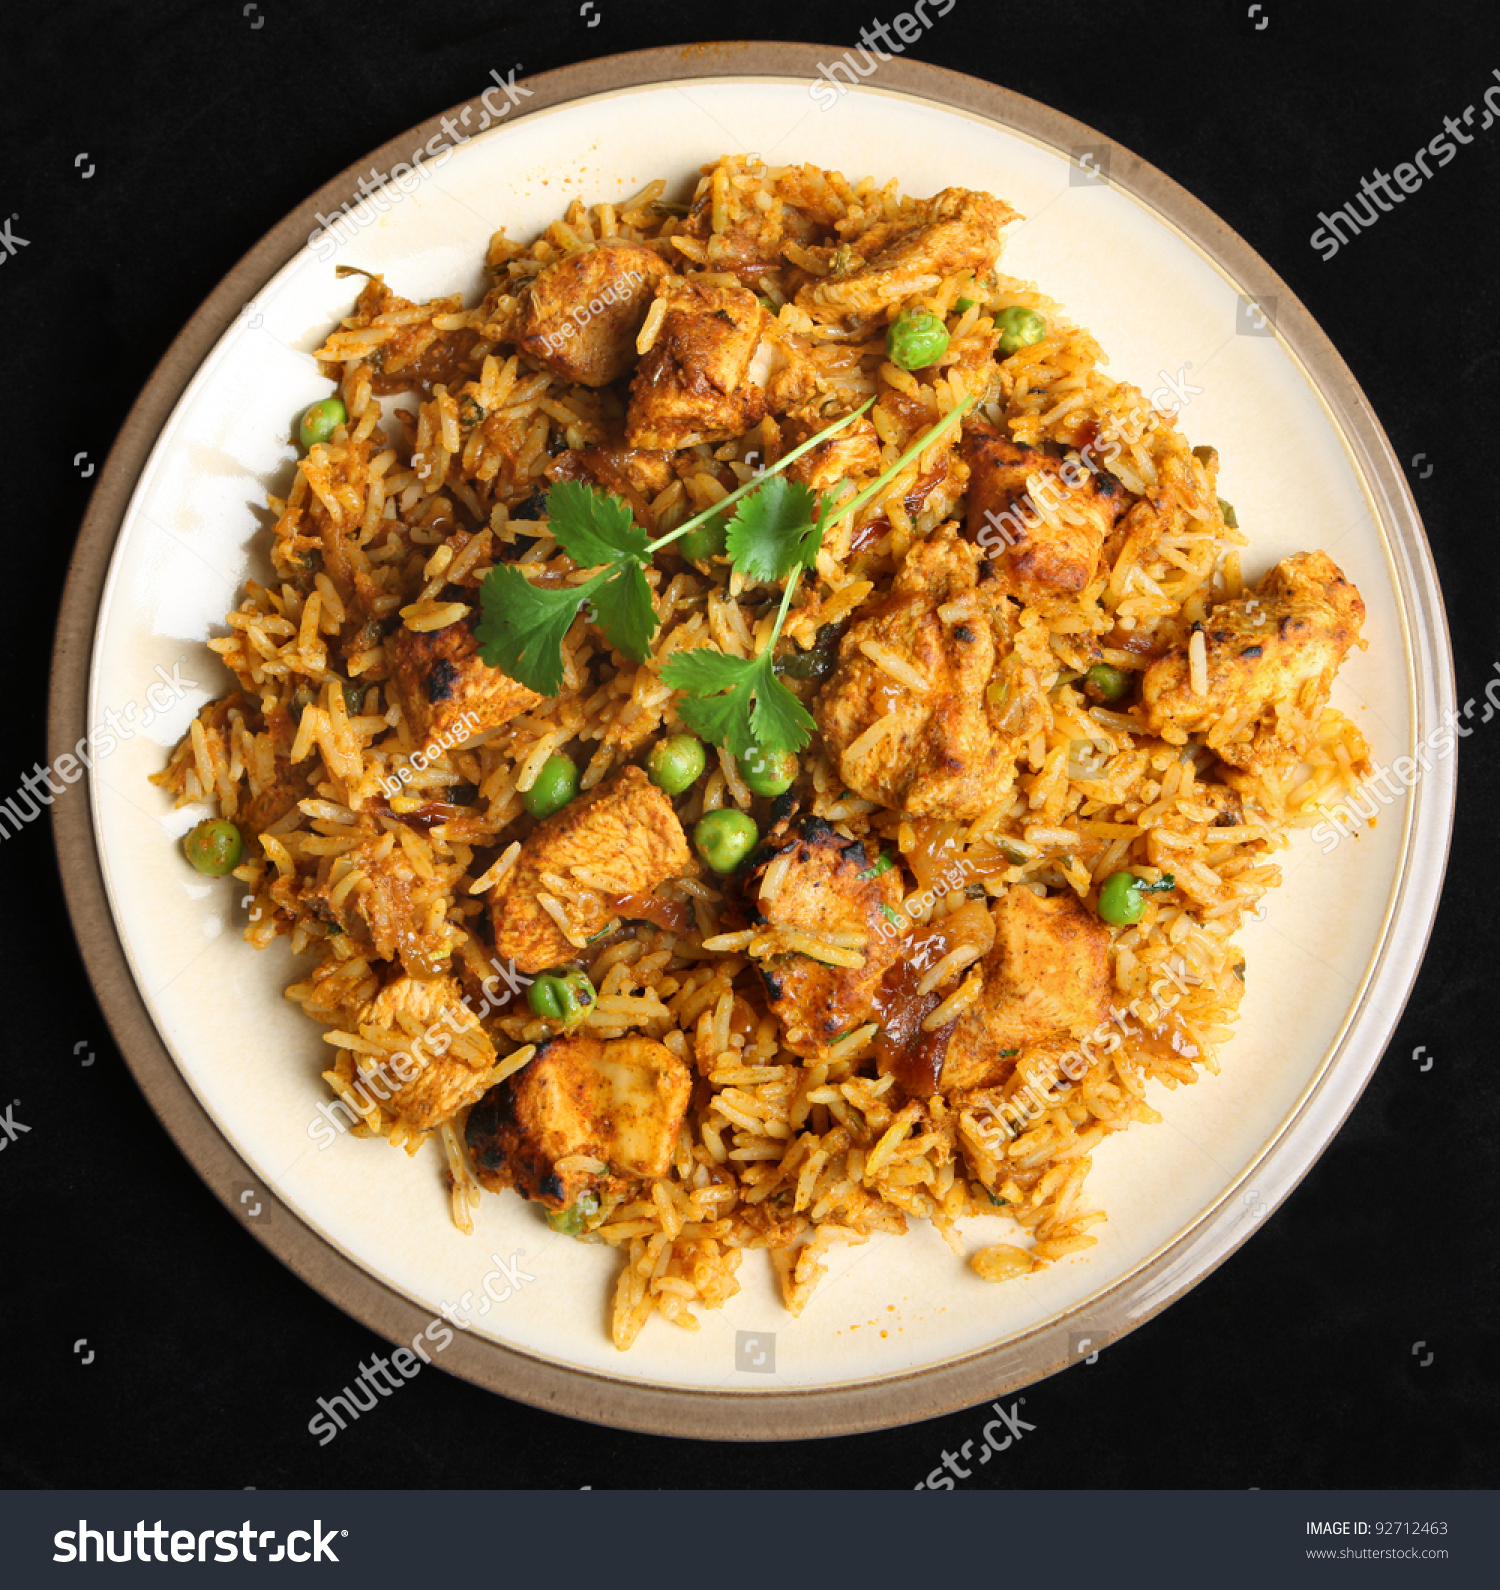 Plate With Food Top View Indian Chicken Tikka Briyani Meal Stock Photo 92712463